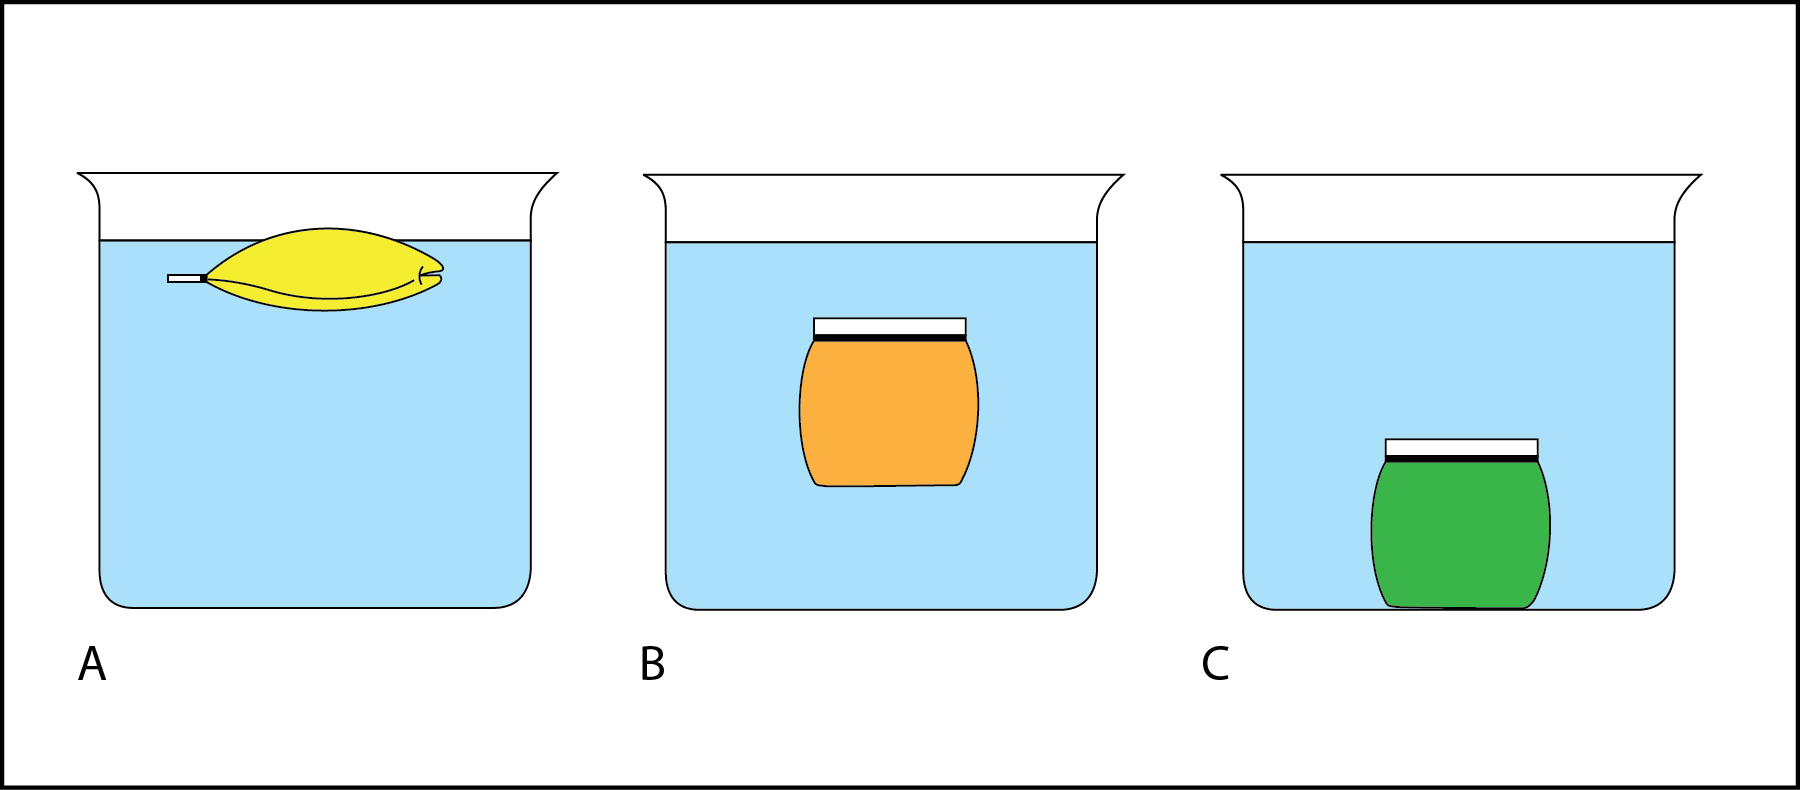 <p><strong>Fig. 2.3. </strong>(<strong>A</strong>) The bag filled with yellow liquid is floating on the surface. (<strong>B</strong>) The bag filled with orange liquid is floating in mid-water (subsurface floating). (<strong>C</strong>) The bag filled with green liquid has sunk to the bottom of the beaker.</p>